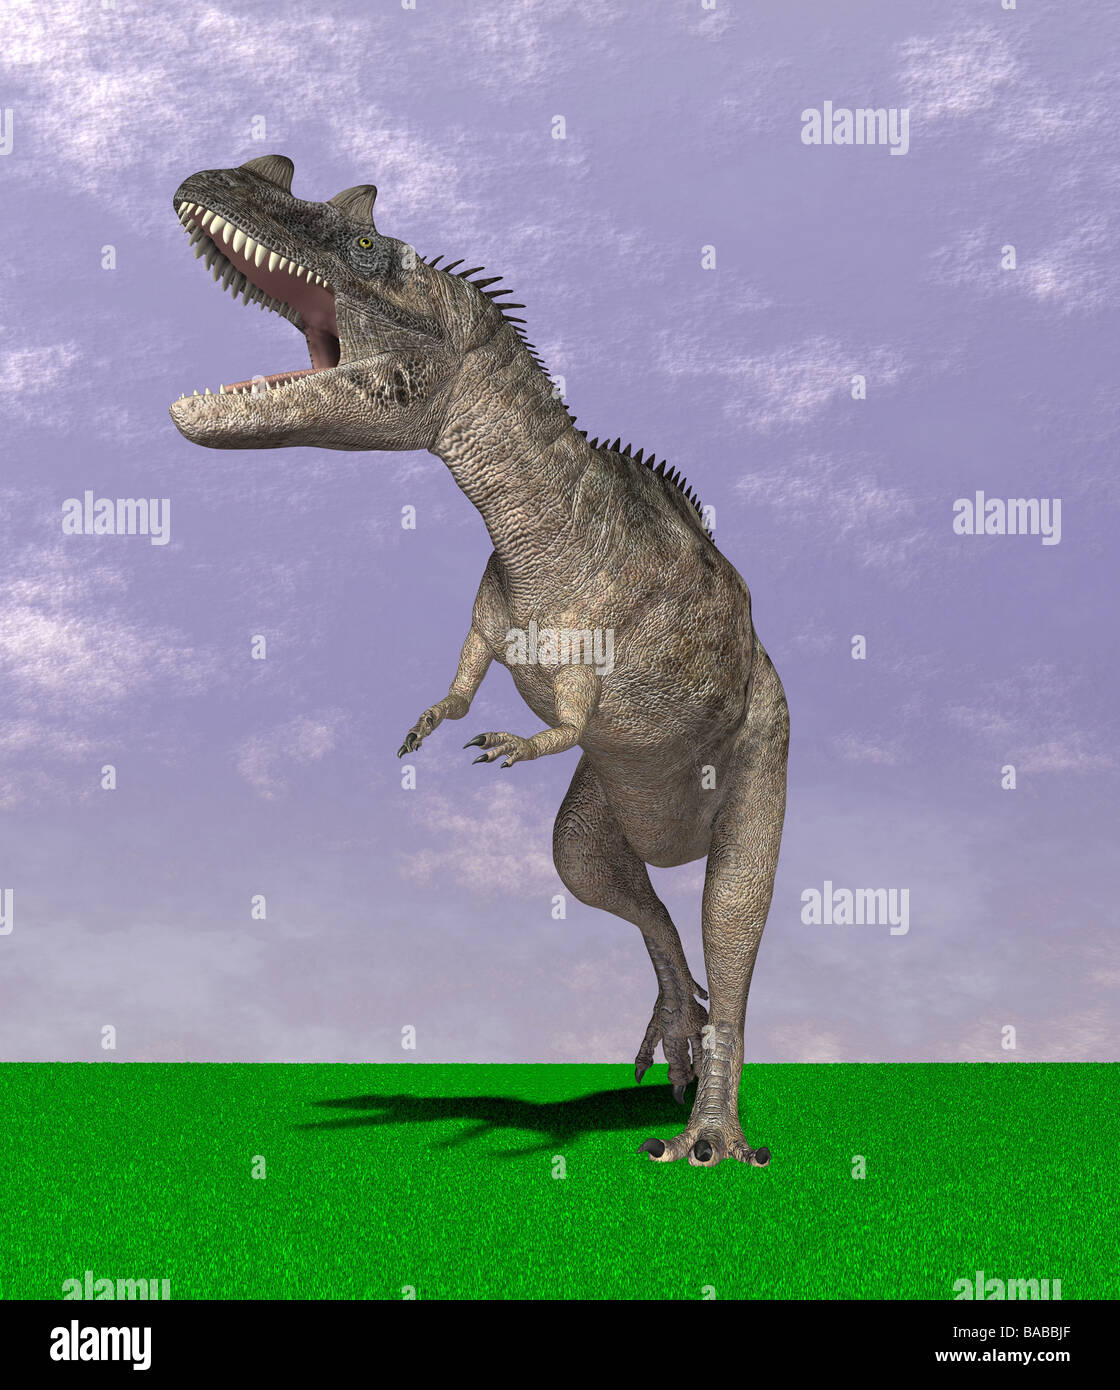 dinosaur Ceratosaurus Stock Photo